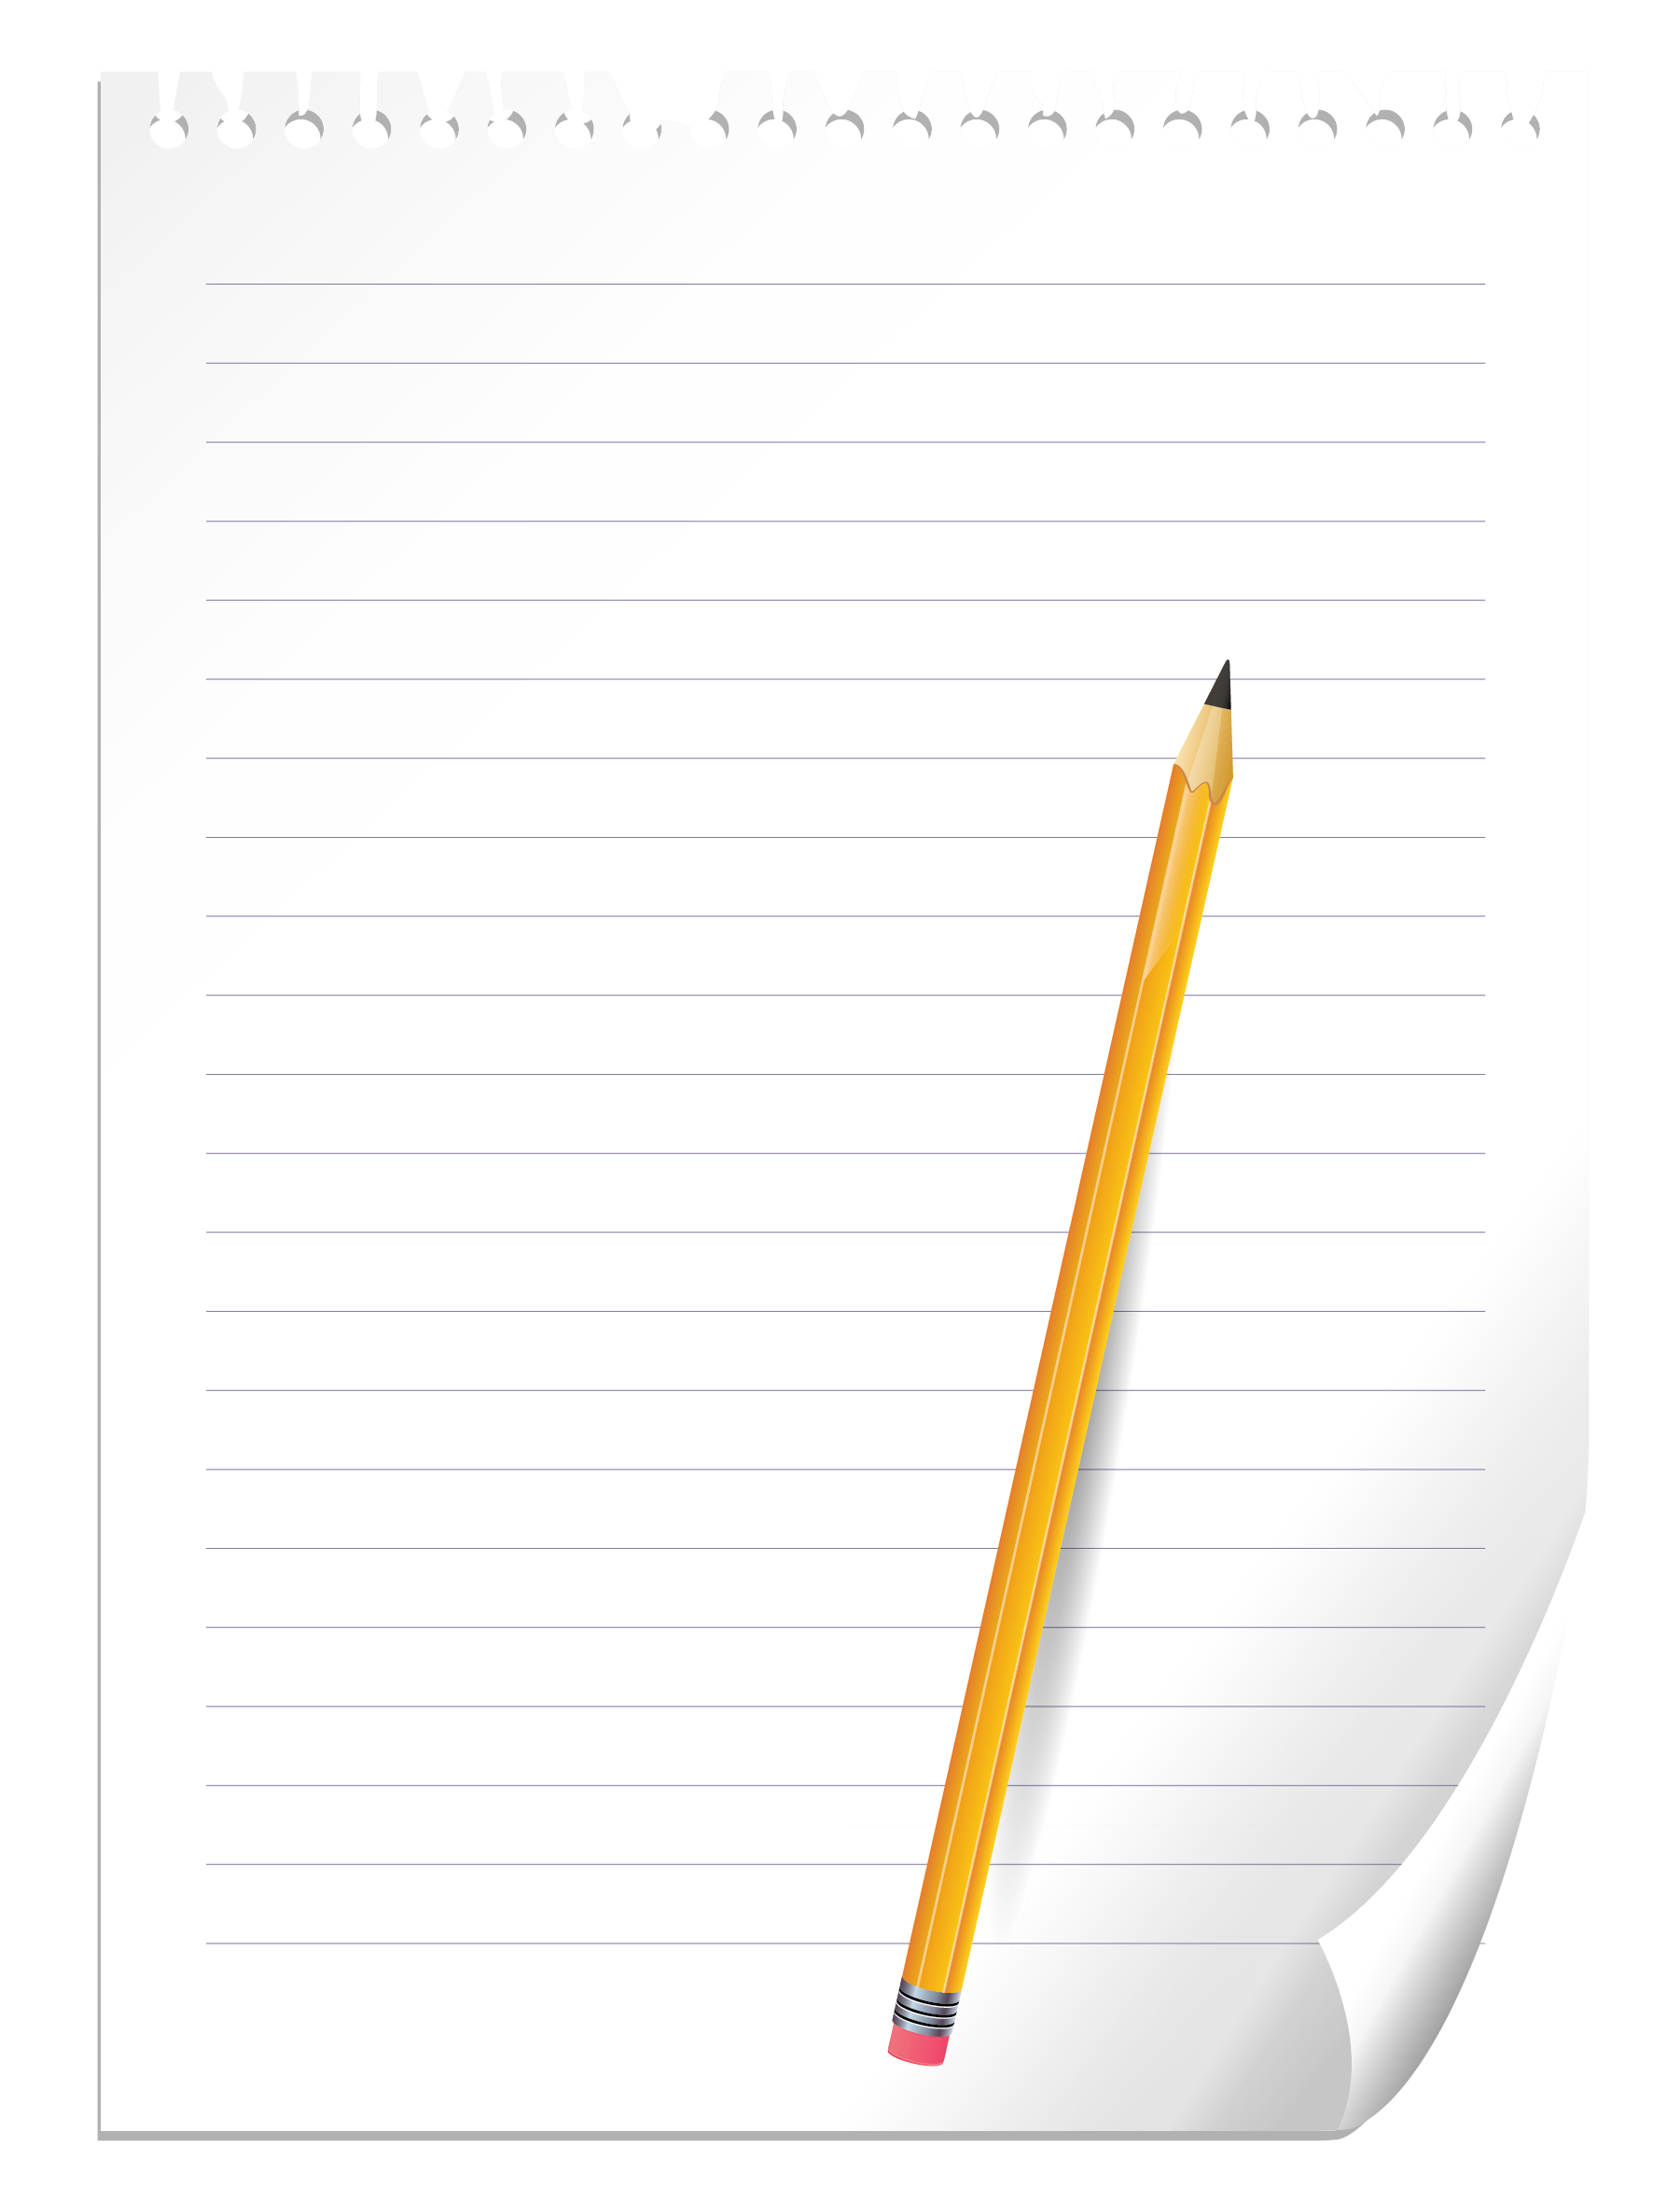 Note book paper png. Pencil and notebook clipart